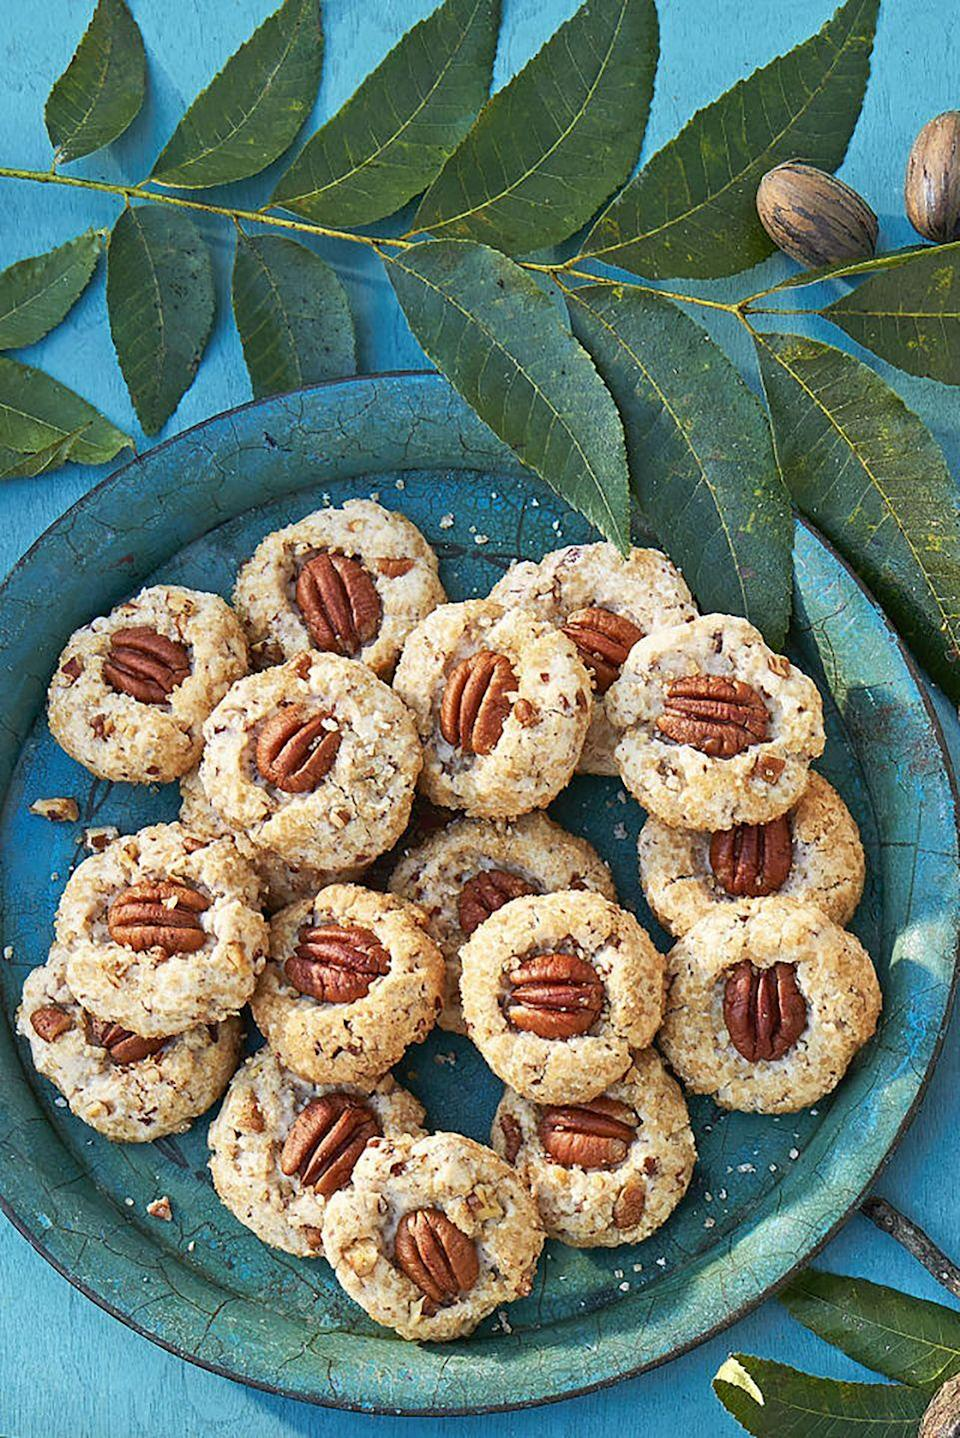 """<p>Add pecans to classic shortbread cookies for a sweet and nutty treat.</p><p><strong><a href=""""https://www.countryliving.com/food-drinks/recipes/a45303/pecan-shortbread-cookie-recipe/"""" rel=""""nofollow noopener"""" target=""""_blank"""" data-ylk=""""slk:Get the recipe"""" class=""""link rapid-noclick-resp"""">Get the recipe</a>.</strong></p>"""